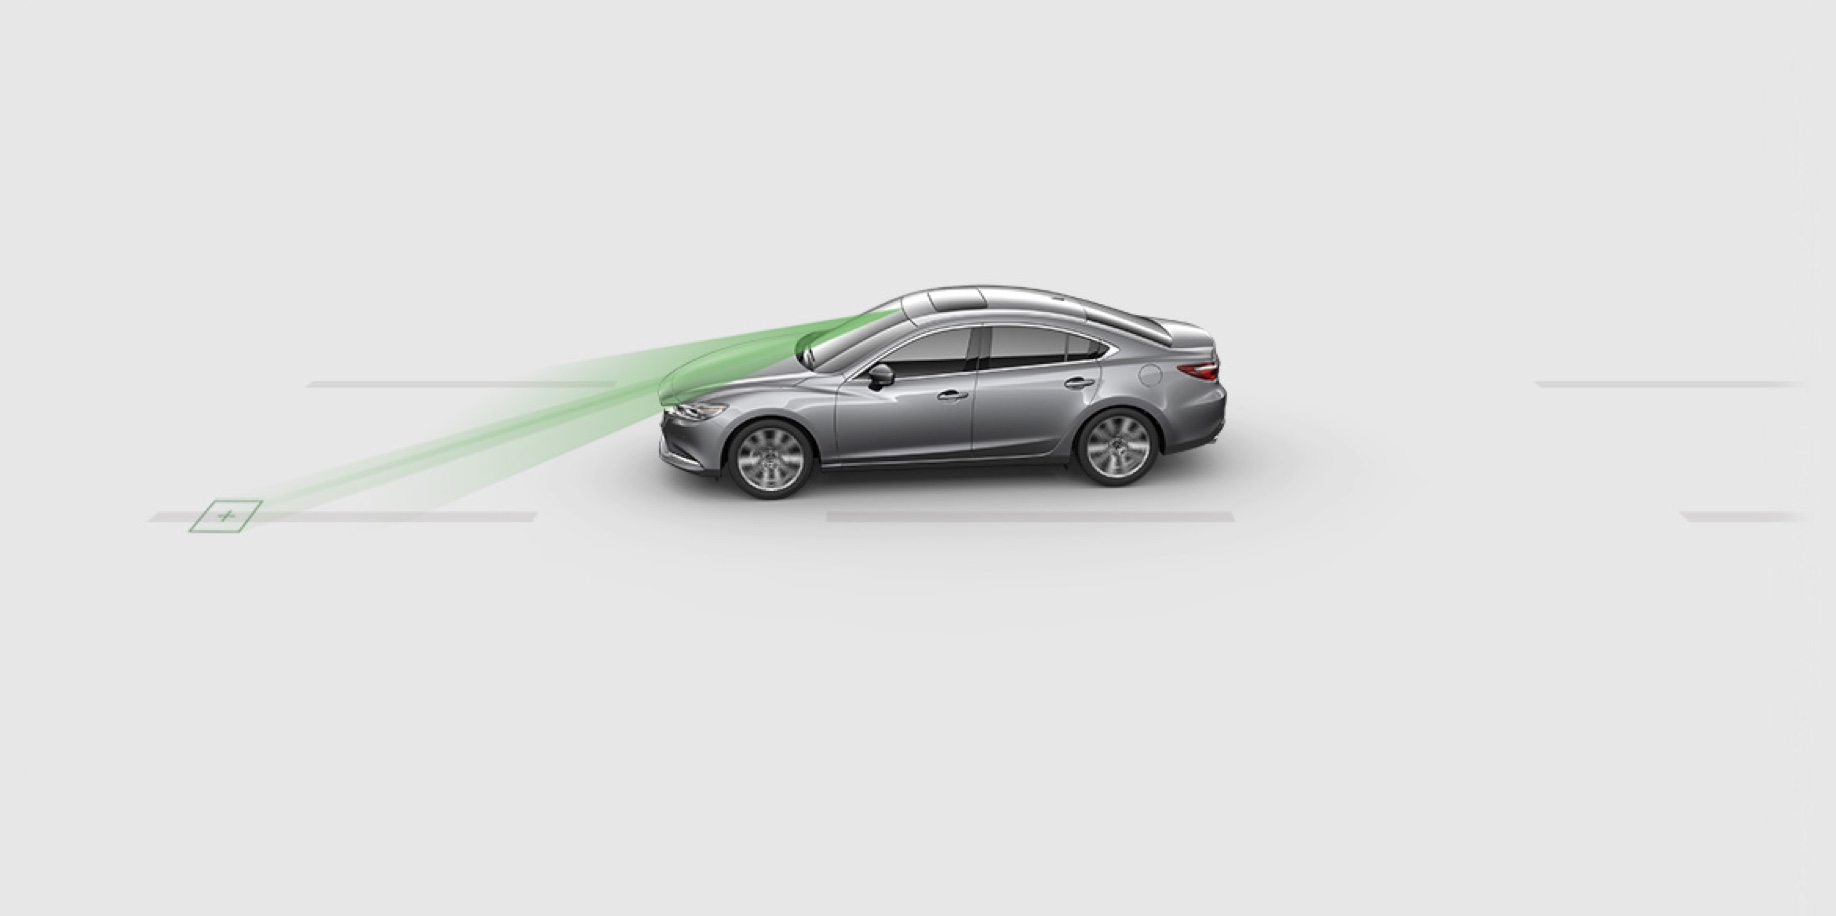 LANE DEPARTURE WARNING SYSTEM - Mazda6